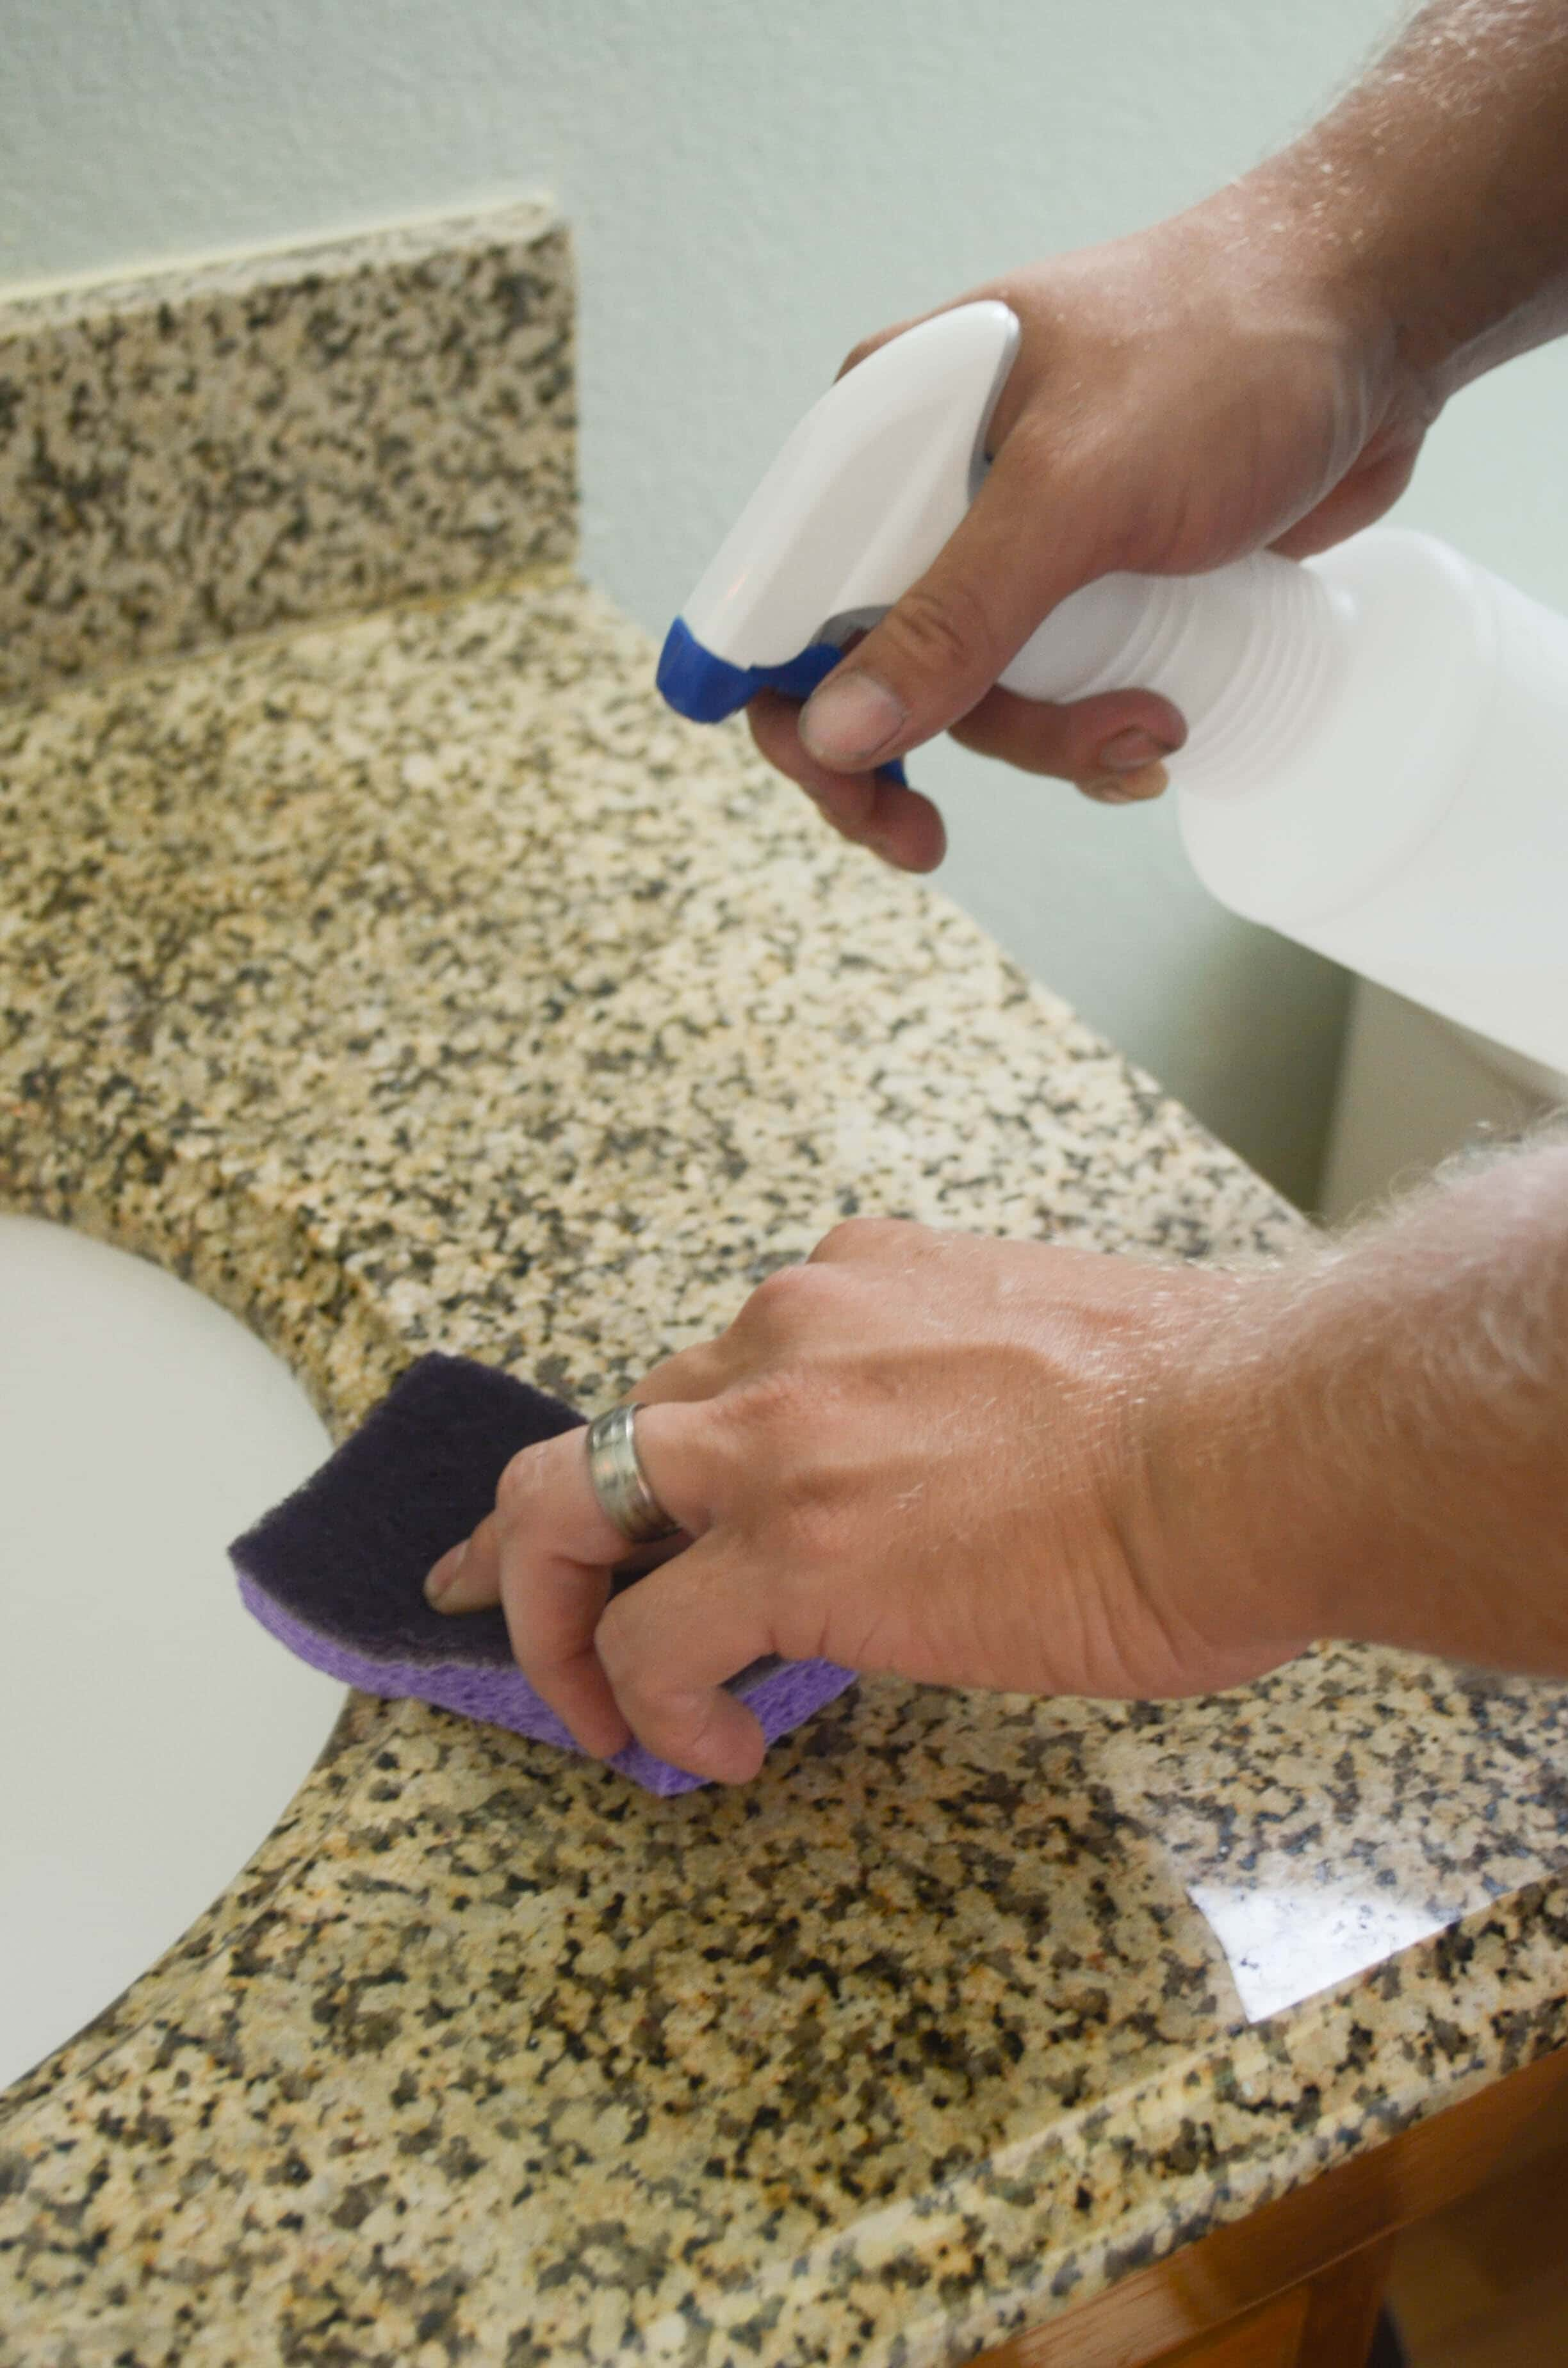 5 Bathroom Cleaning Tips with Scotch Brite   Simple cleaning tips to get your home. 5 Bathroom Cleaning Tips   Mommy Hates Cooking